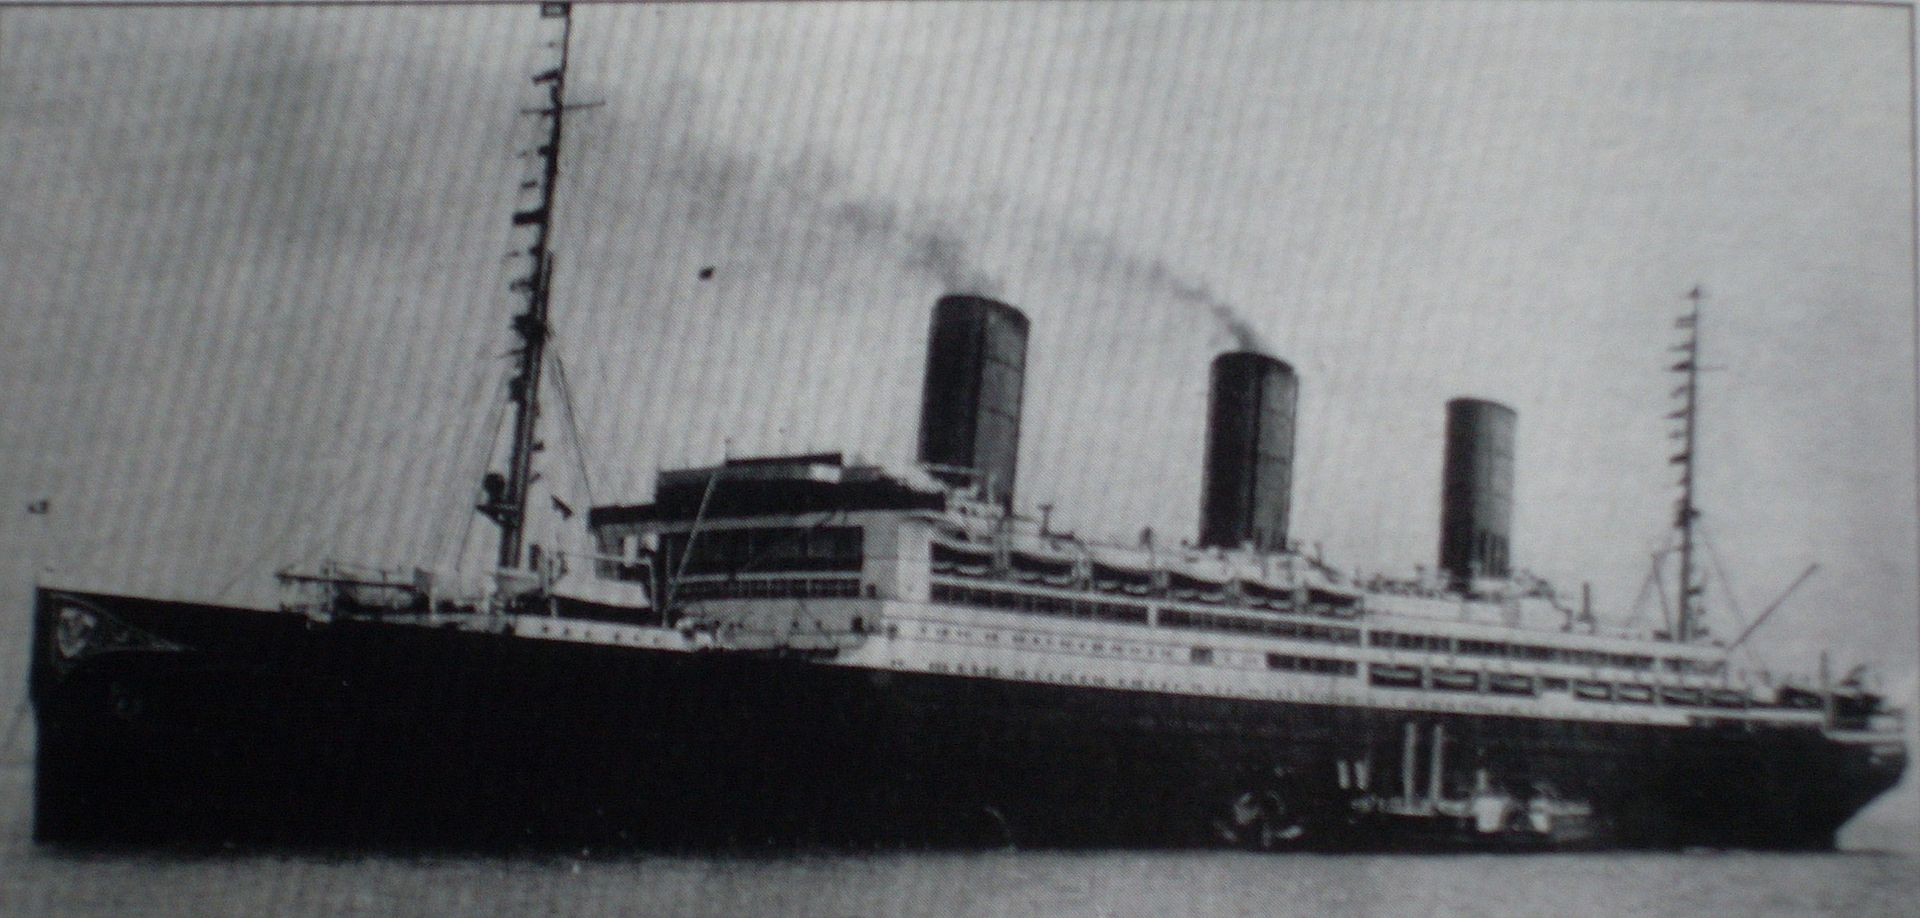 The  SS Vaterland , after World War I renamed  SS Leviathan  under the American flag. Technical data: Length: 950 feet (Titanic 882 feet, Lusitania 787 feet); Width: 100 feet (Titanic 92 feet, Lusitania 87 feet); Draught: 36 feet (Titanic 35 feet, Lusitania 34 feet); Gross Registered Tons: 54,282 (Titanic 46,328, Lusitania 31,550); Crew: 1,234 (Titanic 885, Lusitania 850); Passengers: 3,909 (Titanic 3,547, Lusitania 2,198); Engines: 4 Blohm and Voss Steam Turbines, 100,000 hp (Titanic 59,000 hp, Lusitania 76,000 hp); Max Speed 26.3 Knots (Titanic 23 Knots, Lusitania 26.7 Knots)